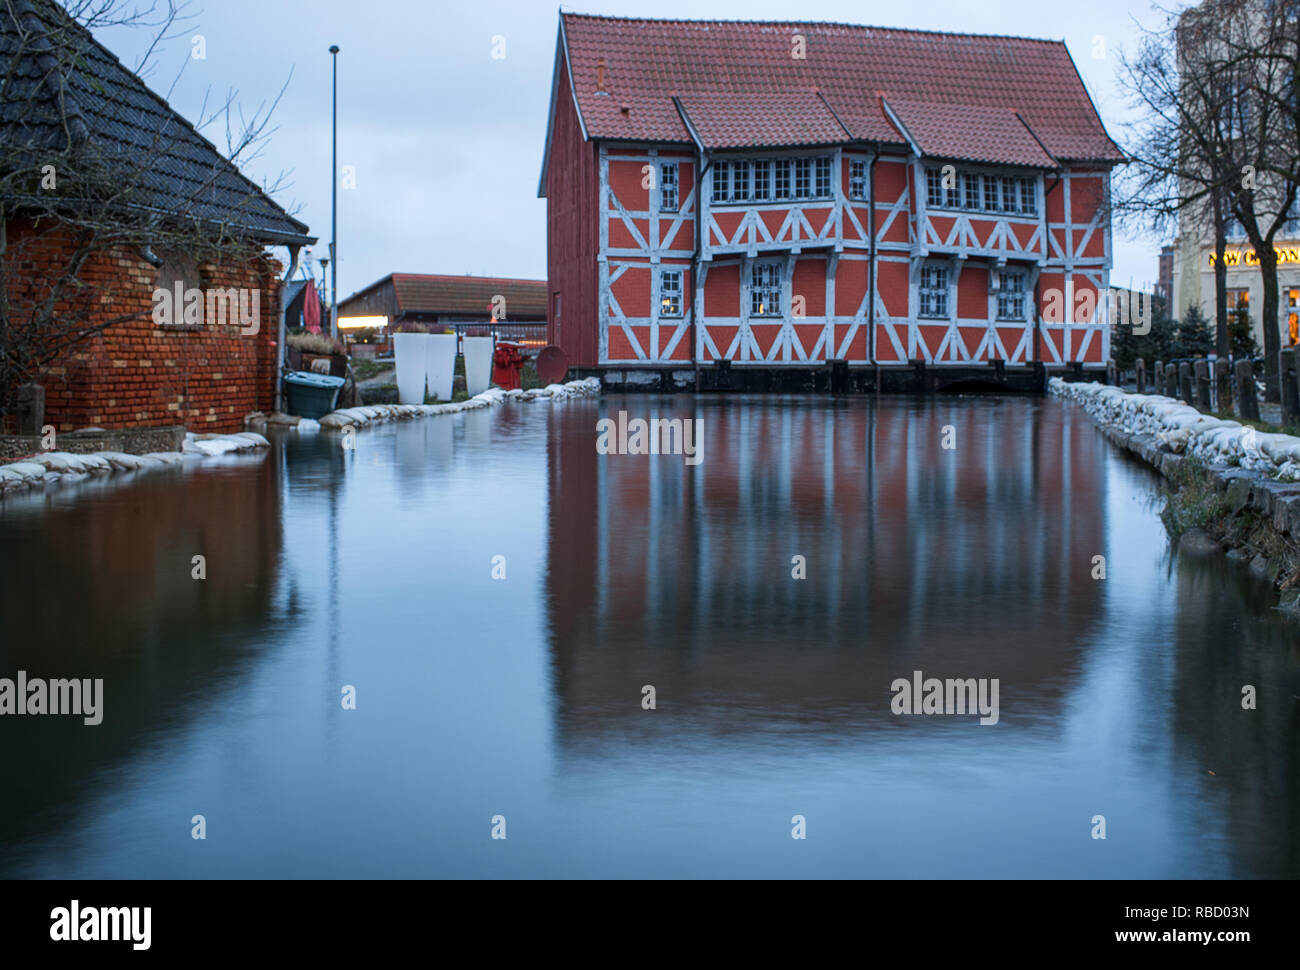 Wismar, Germany. 09th Jan, 2019. The Red House at the city harbour is in high water which accumulates in the fresh pit. A storm surge is expected again in many places on the Baltic Sea coast in the northeast. The Hamburg maritime weather service issued a strong wind warning for the Baltic coast. Credit: Jens Büttner/dpa-Zentralbild/dpa/Alamy Live News - Stock Image